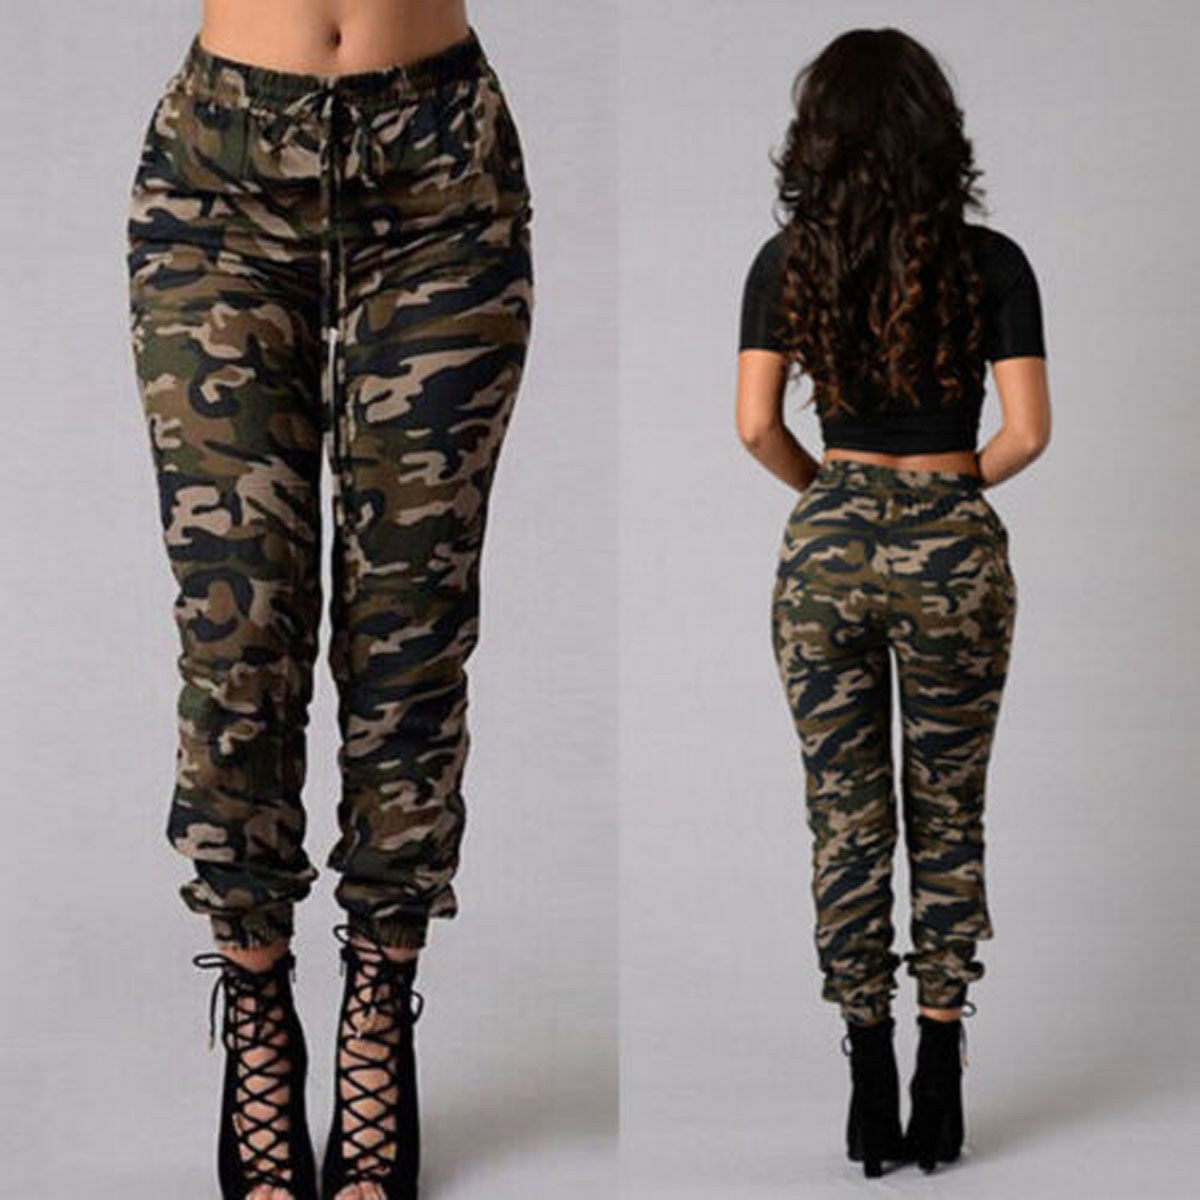 1pc Autumn Outdoor Camping Womens Camo Trousers Casual Hip-hop Military Army Combat Camouflage Pants S-2XL Plus size pants hot 13